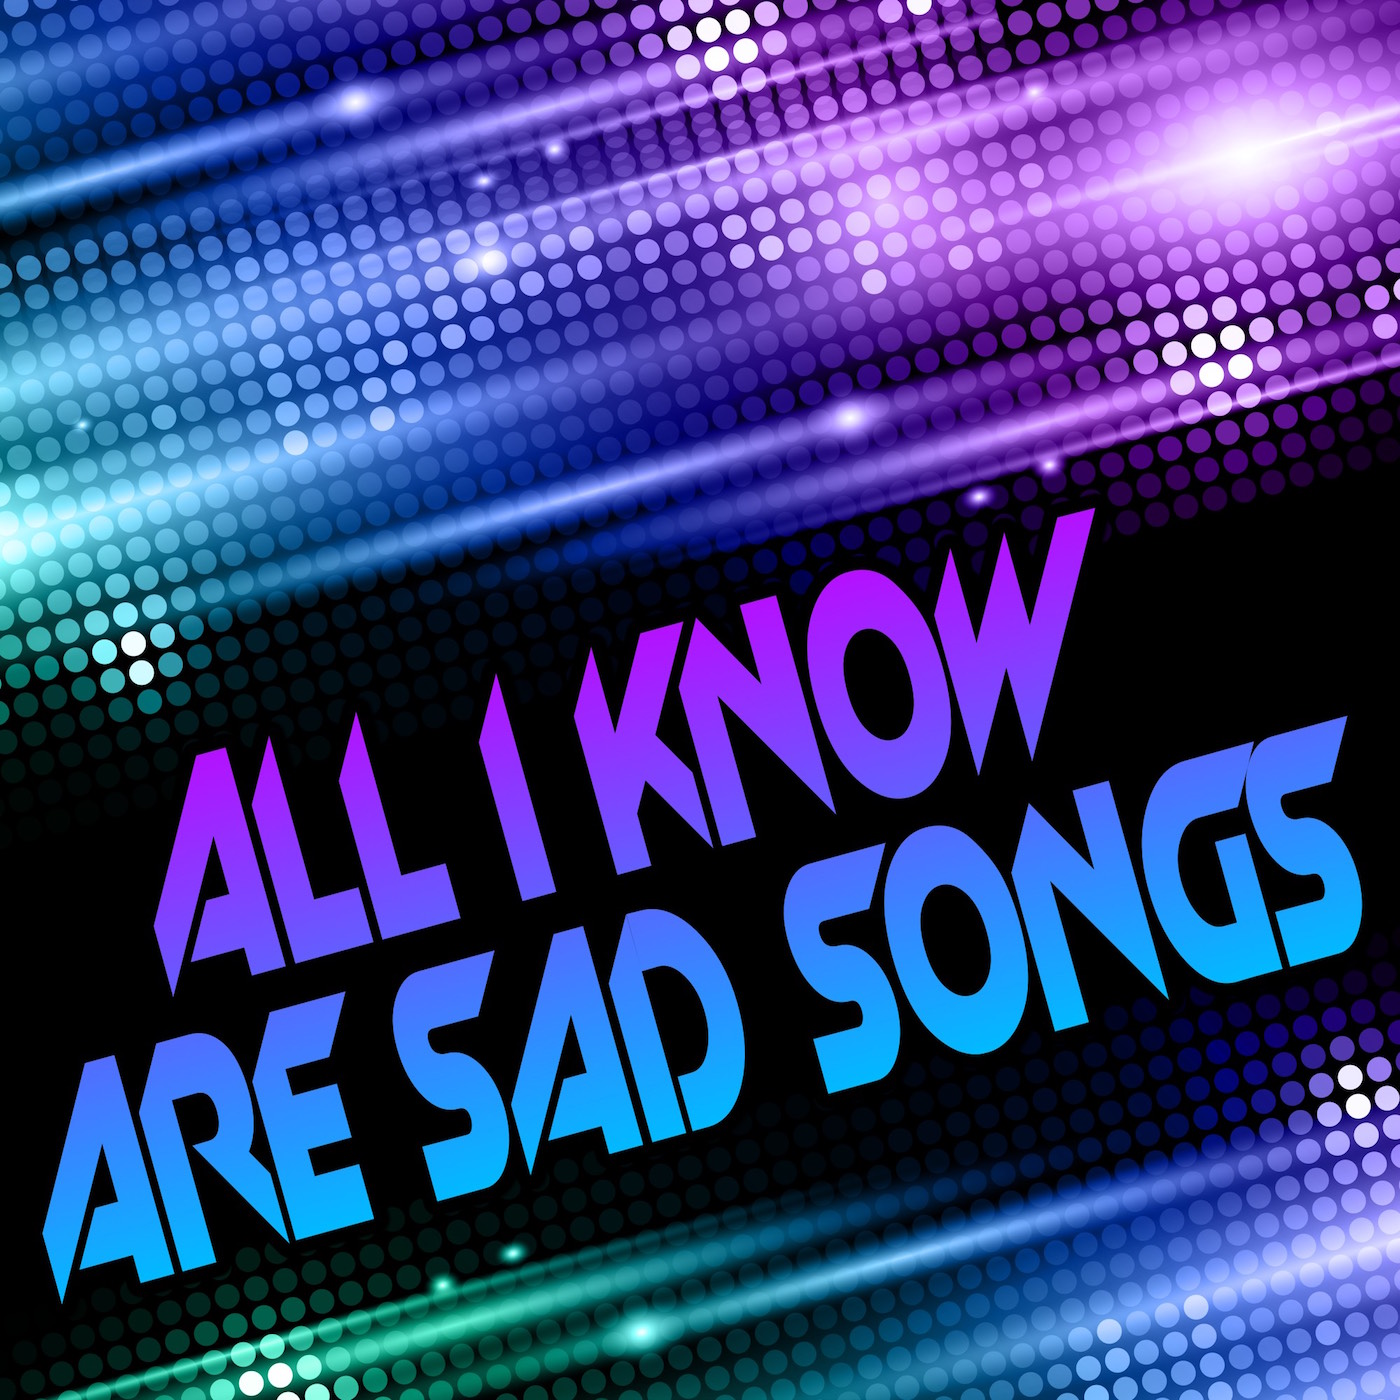 All I Know Are Sad Songs